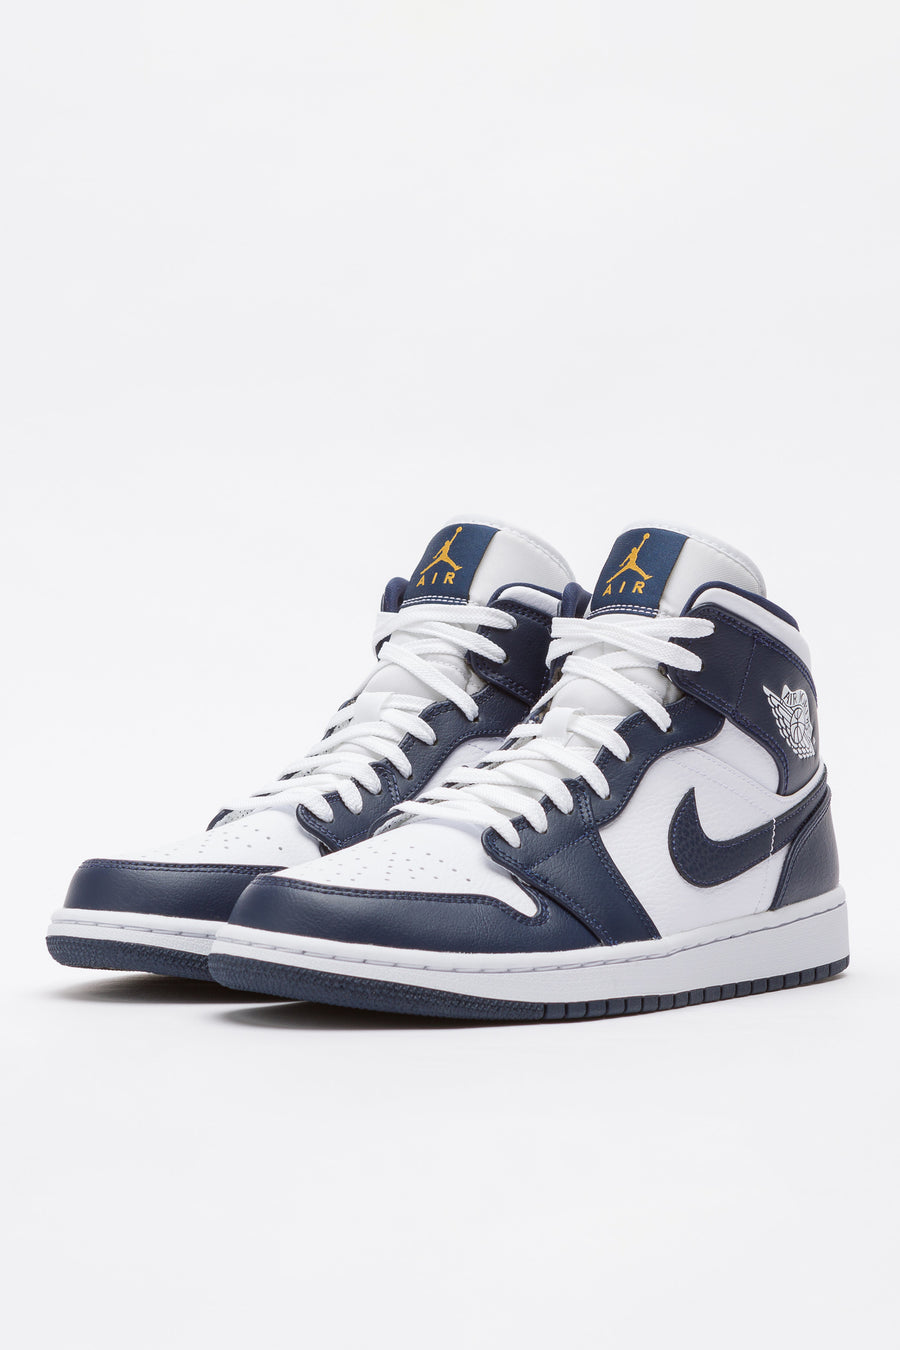 Jordan Air Jordan 1 Mid in White/Obsidian - Notre